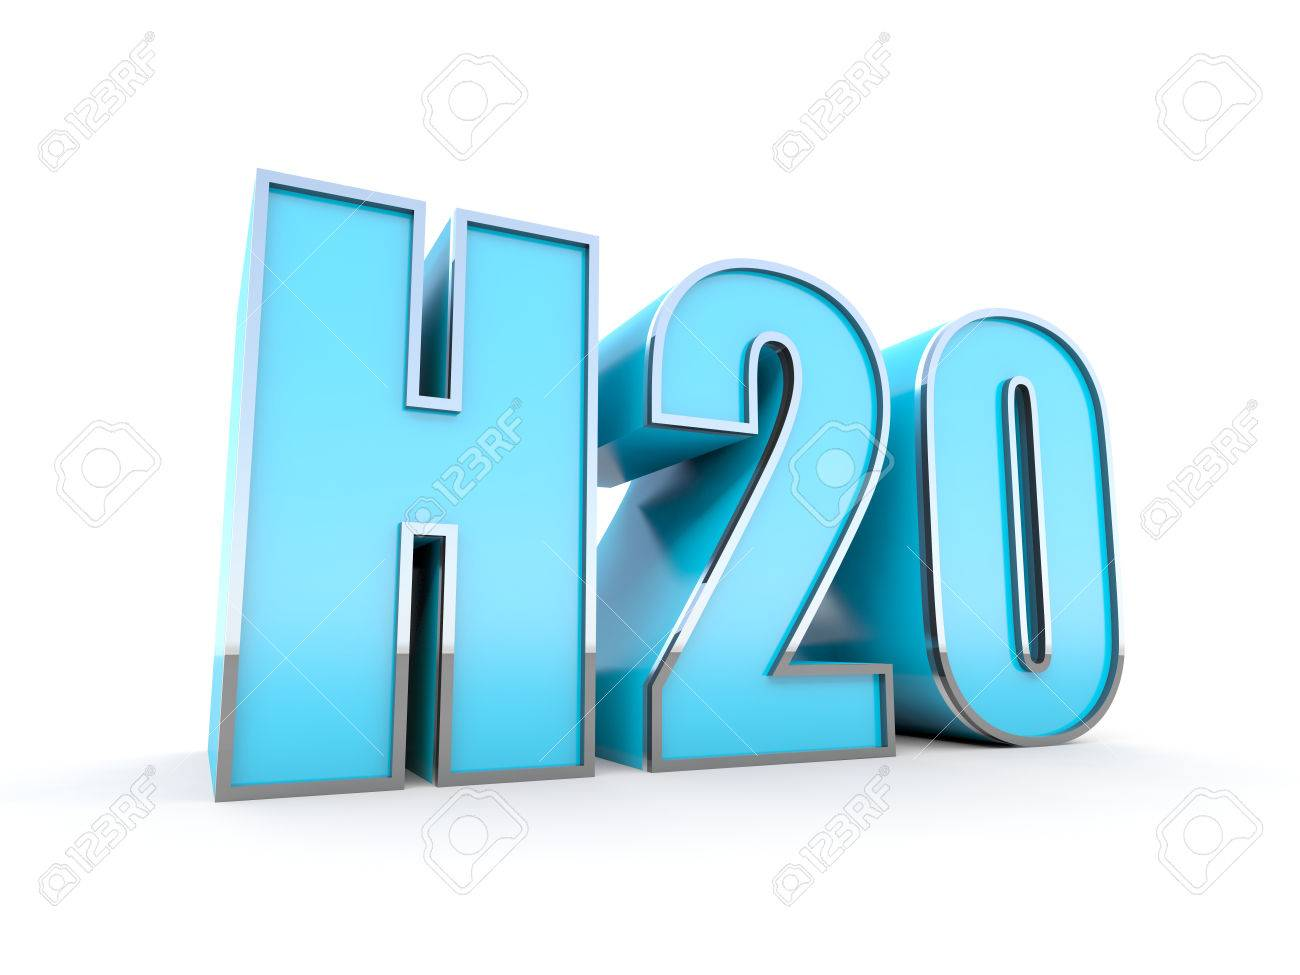 Water chemical formula h2o stock photo picture and royalty free water chemical formula h2o stock photo 46155412 buycottarizona Choice Image